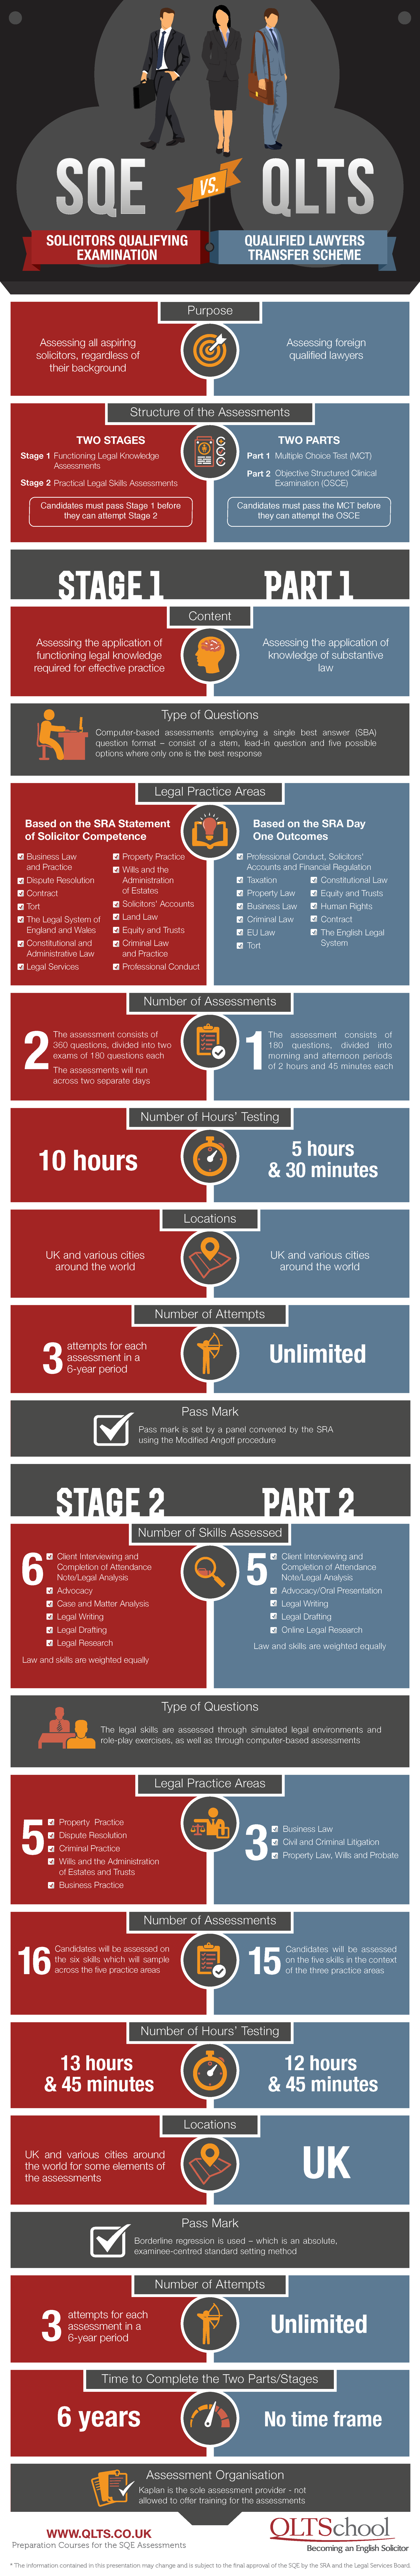 sqe-qlts_infographic